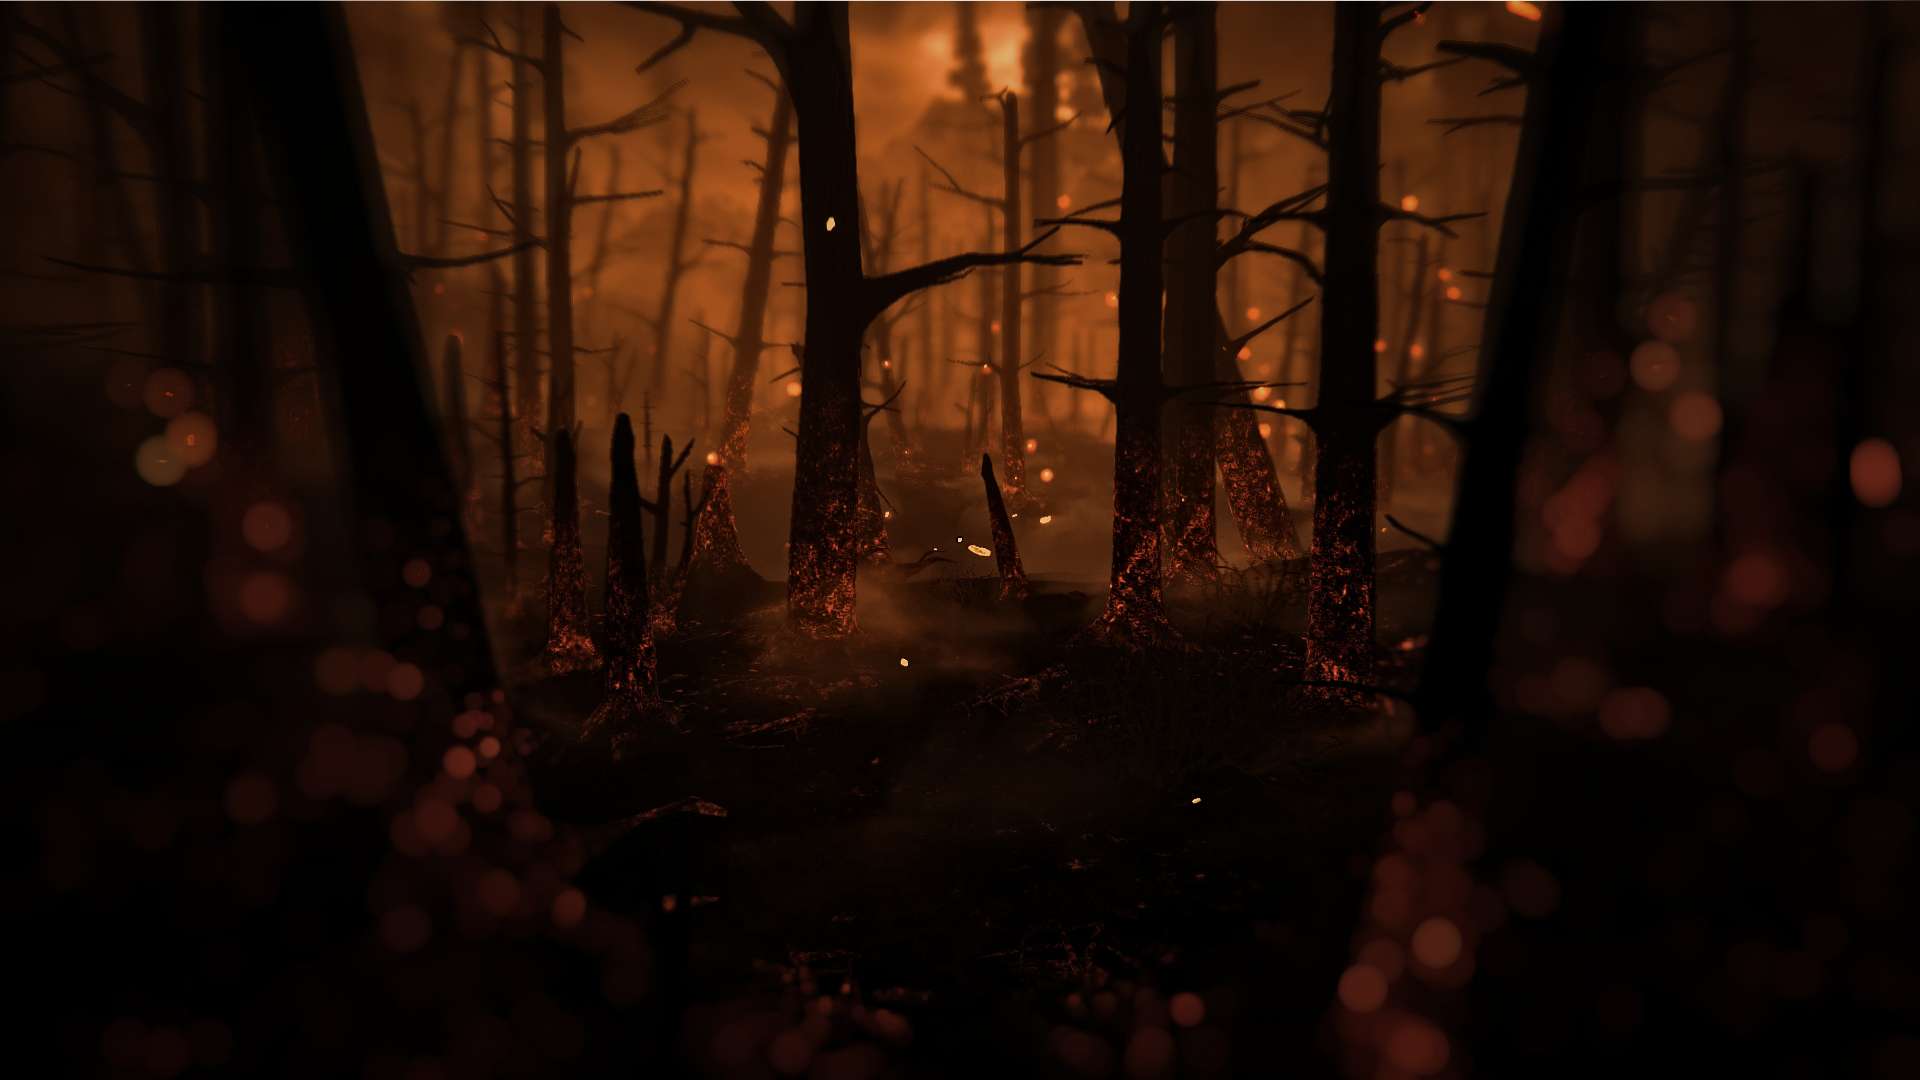 Kholat free for limited time on Steam